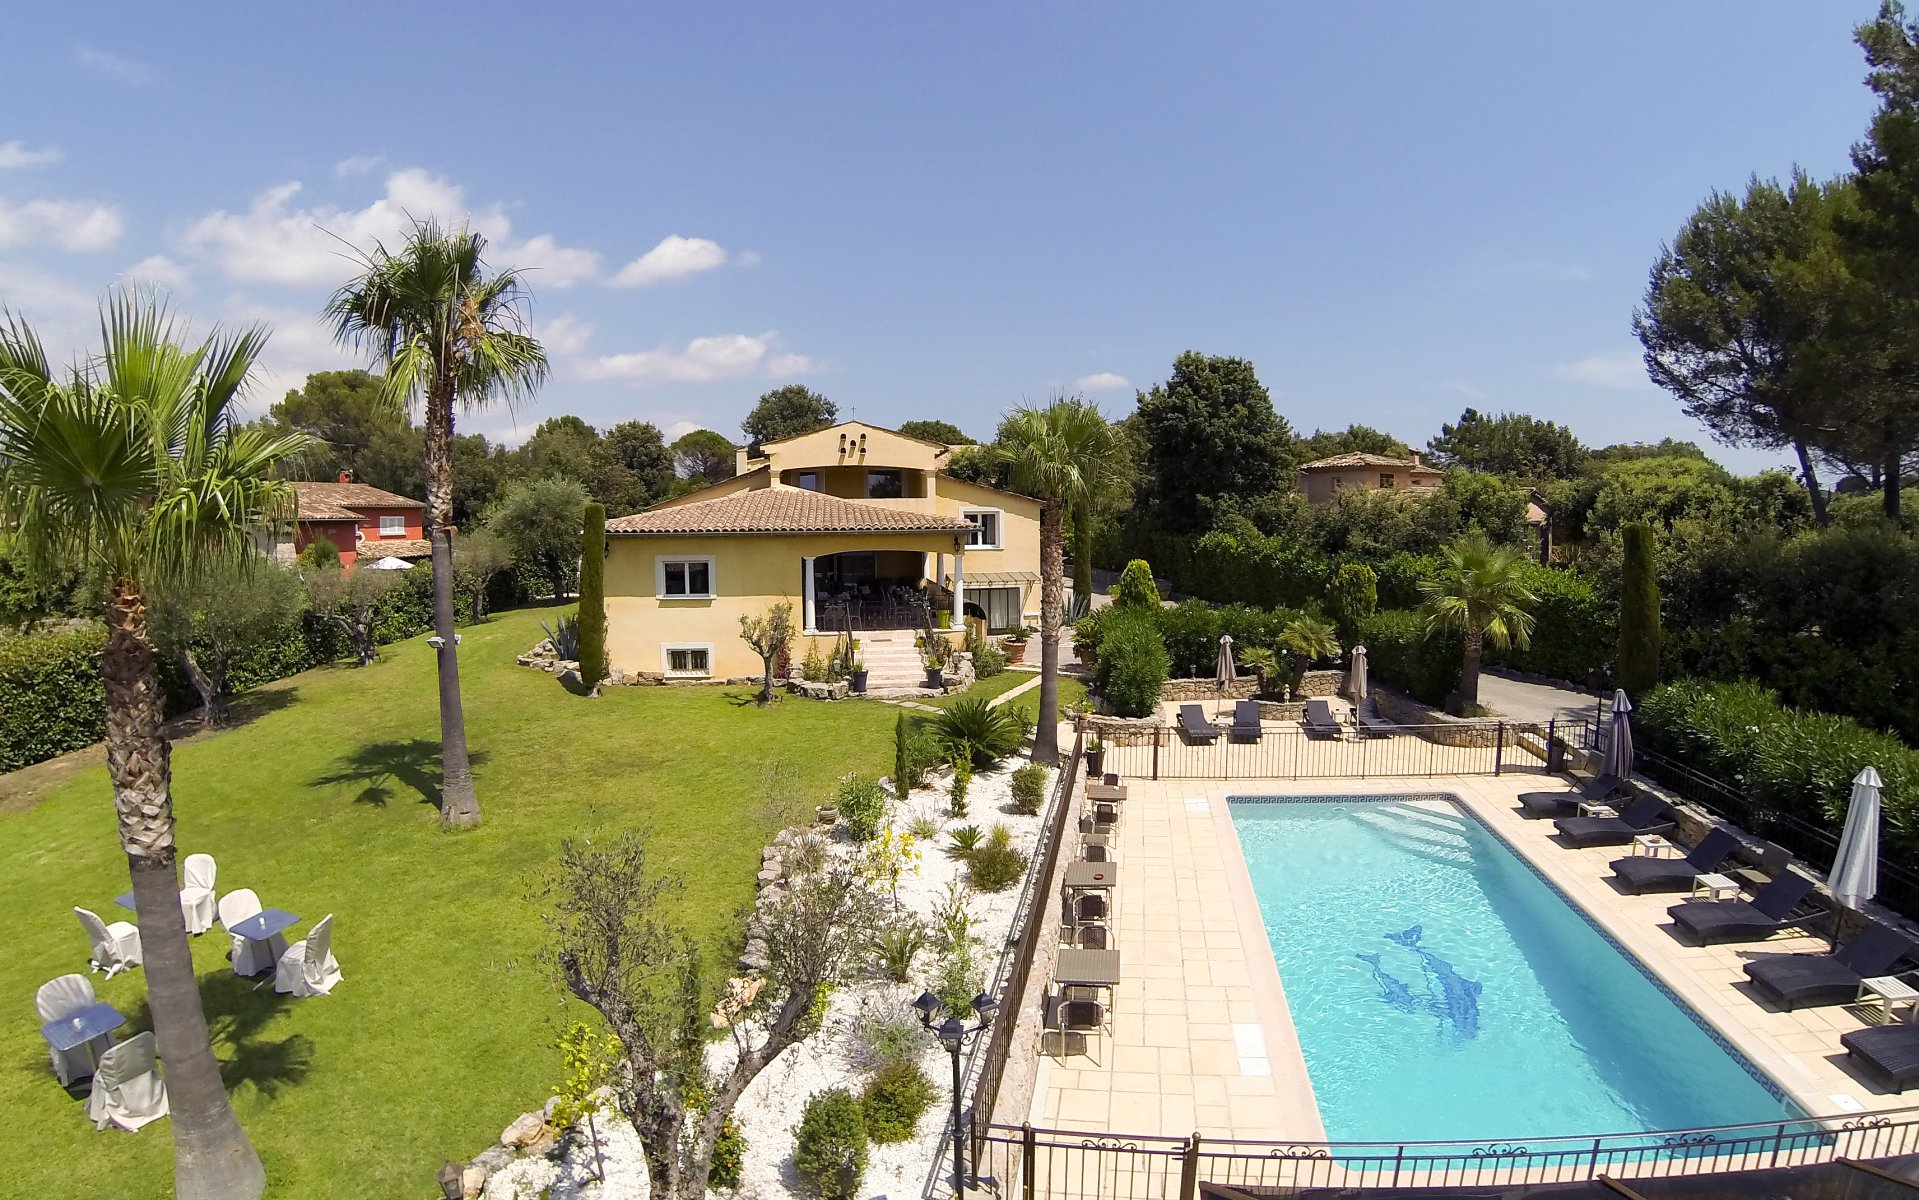 7 bedrooms family villa with pool and view